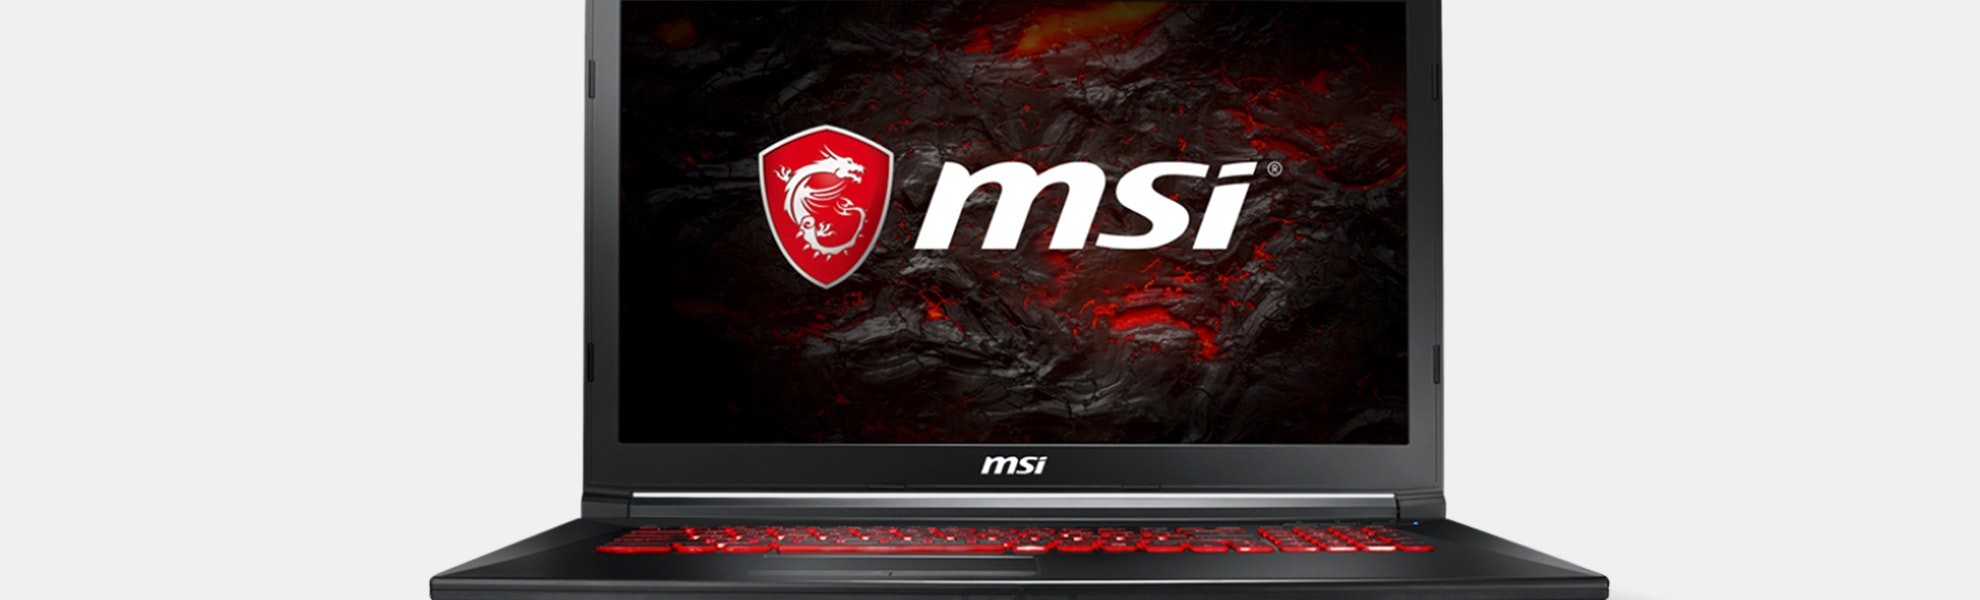 MSI GL72M 17.3-Inch i7-7700HQ Gaming Laptop